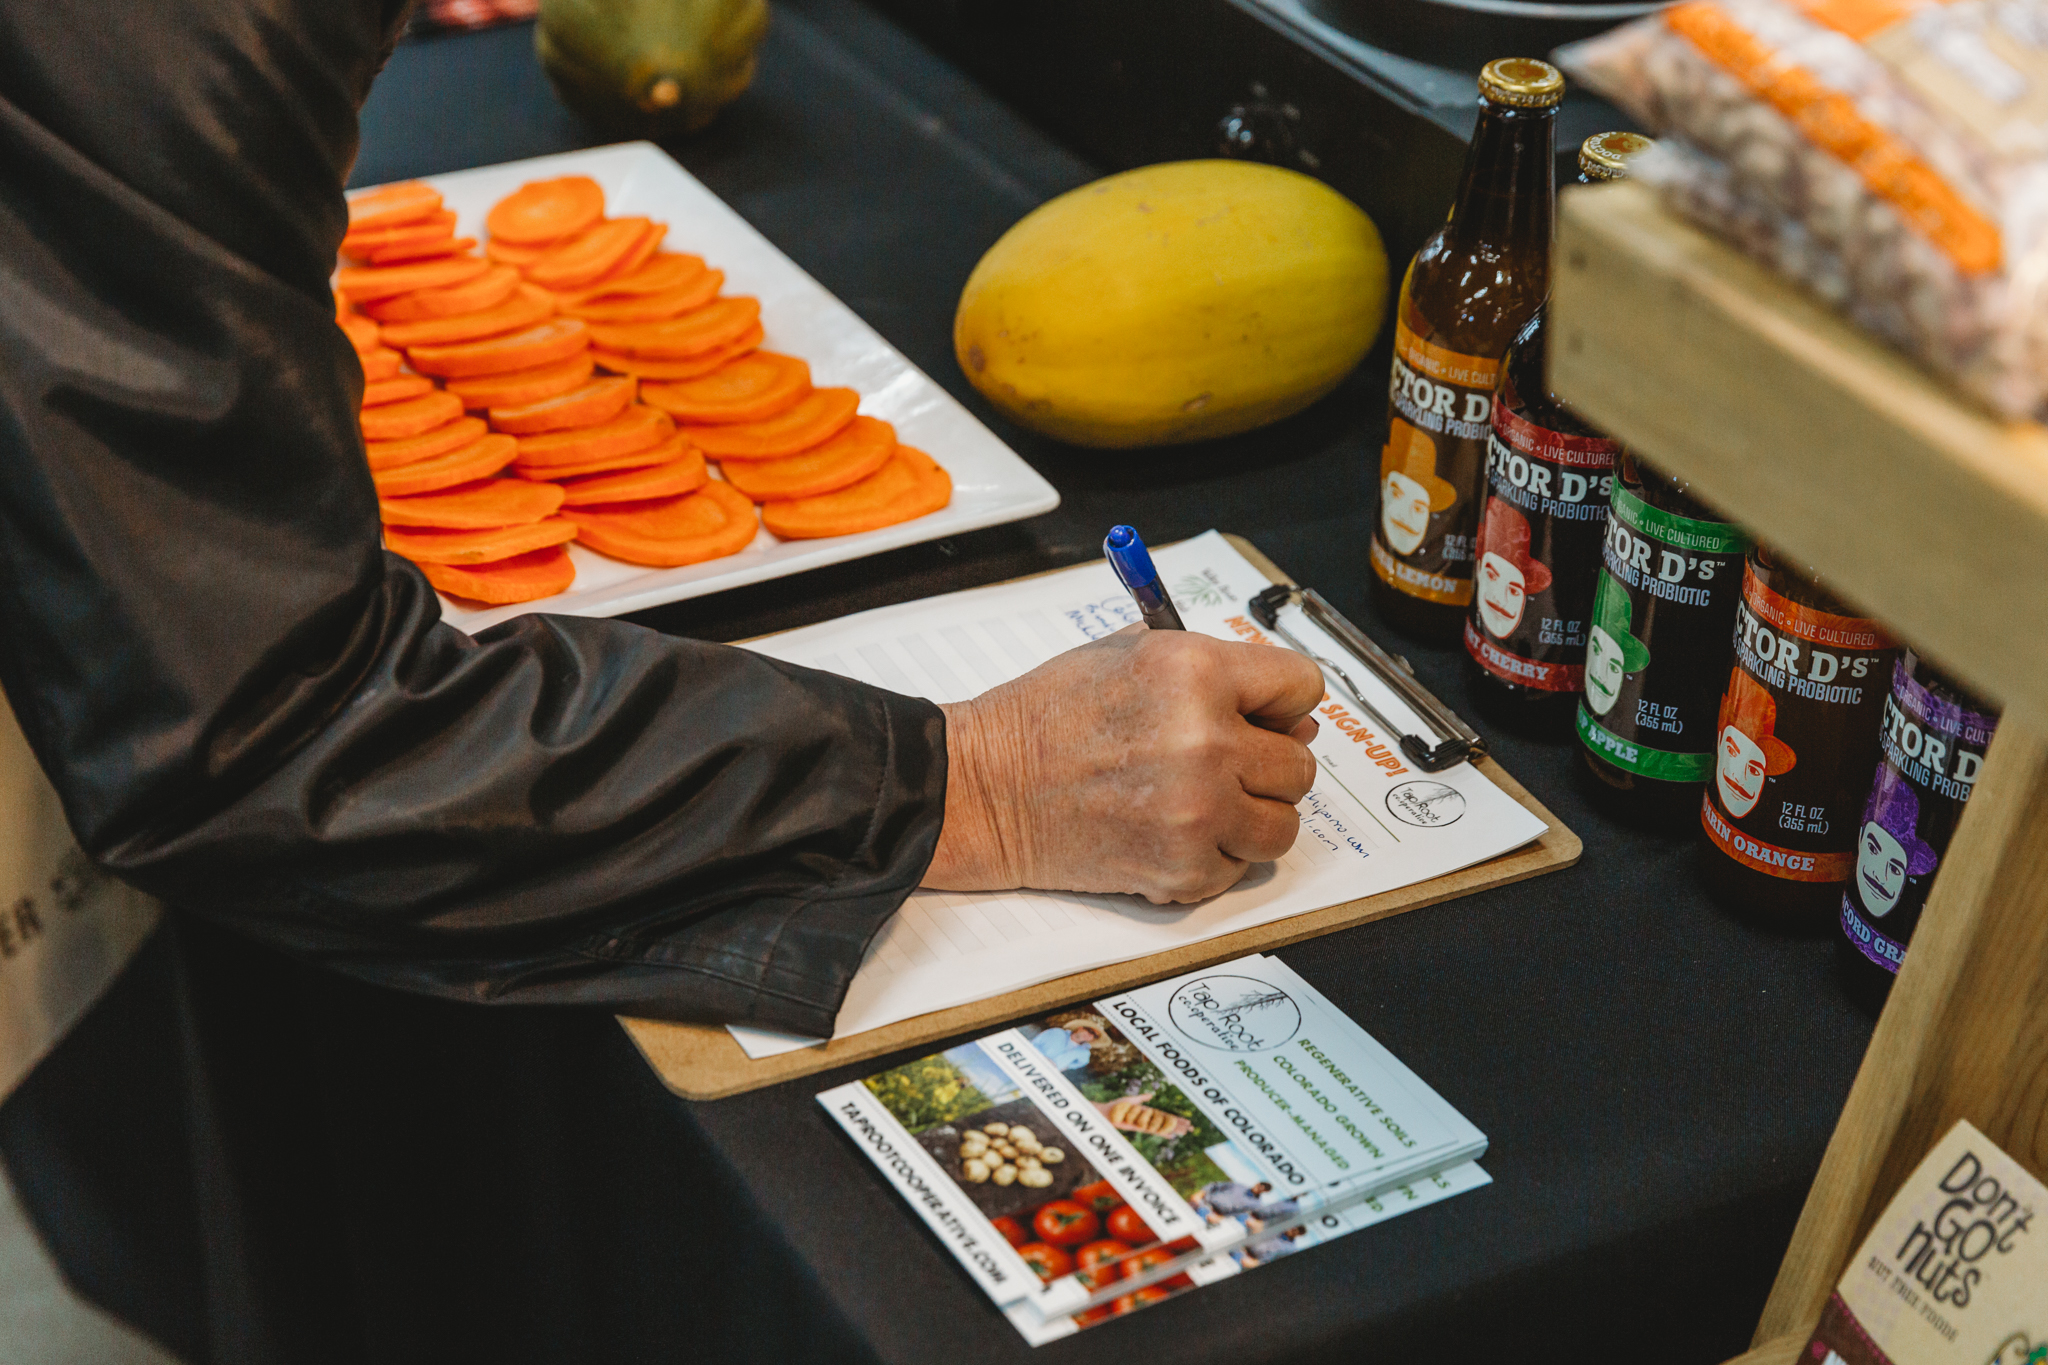 Eat Colorado Food Show web res 03.06.2018_-4.jpg